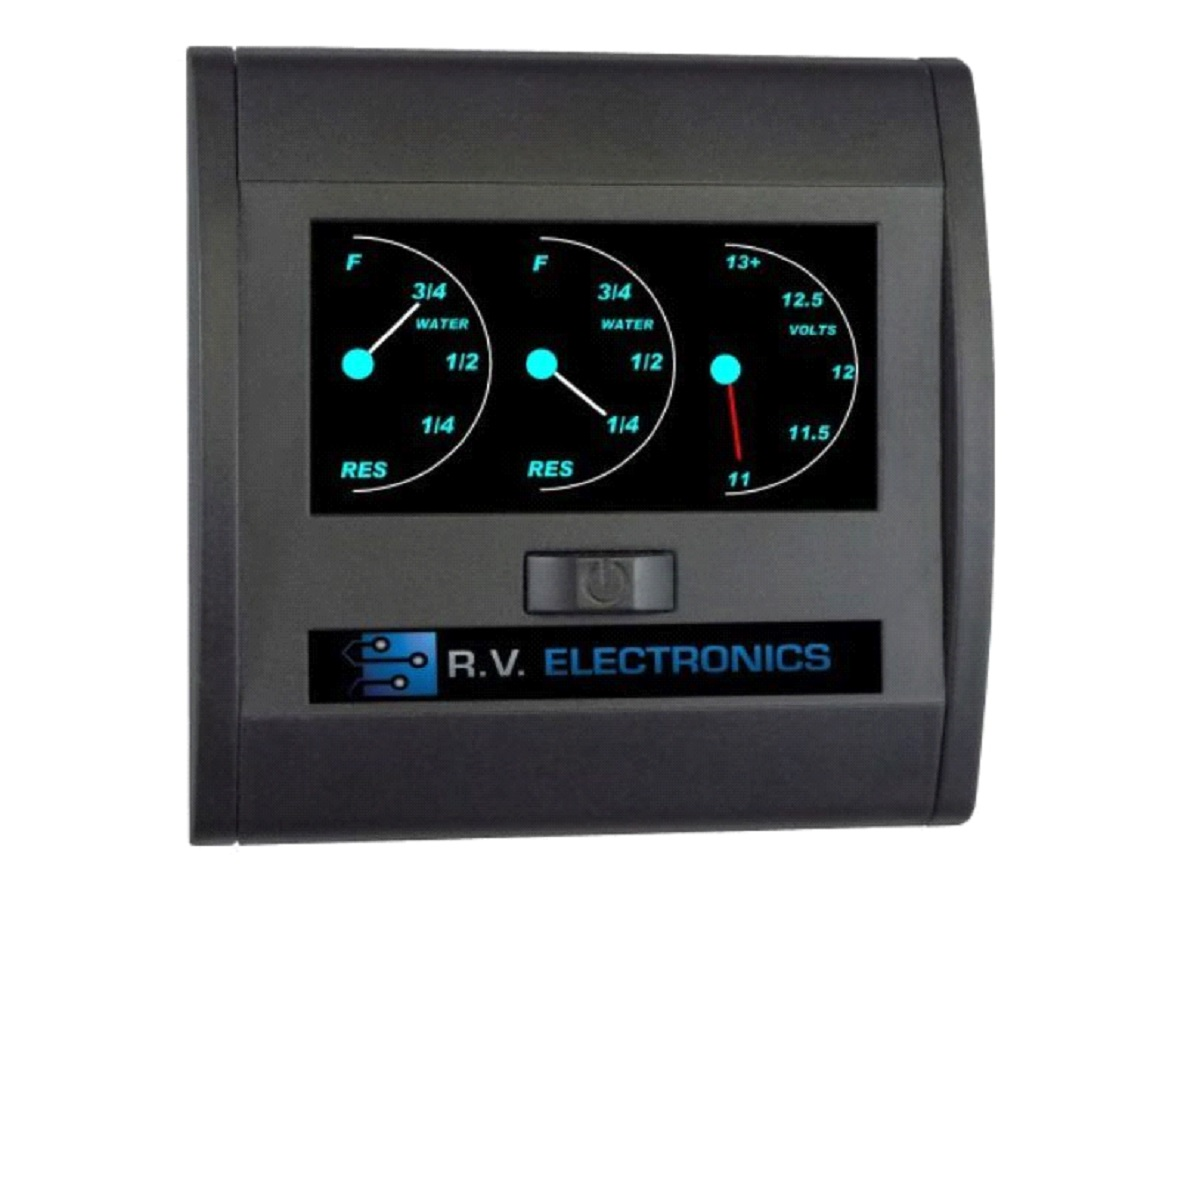 DOUBLE WATER TANK GAUGE & 1 BATTERY GAUGE LCD BACKLIT